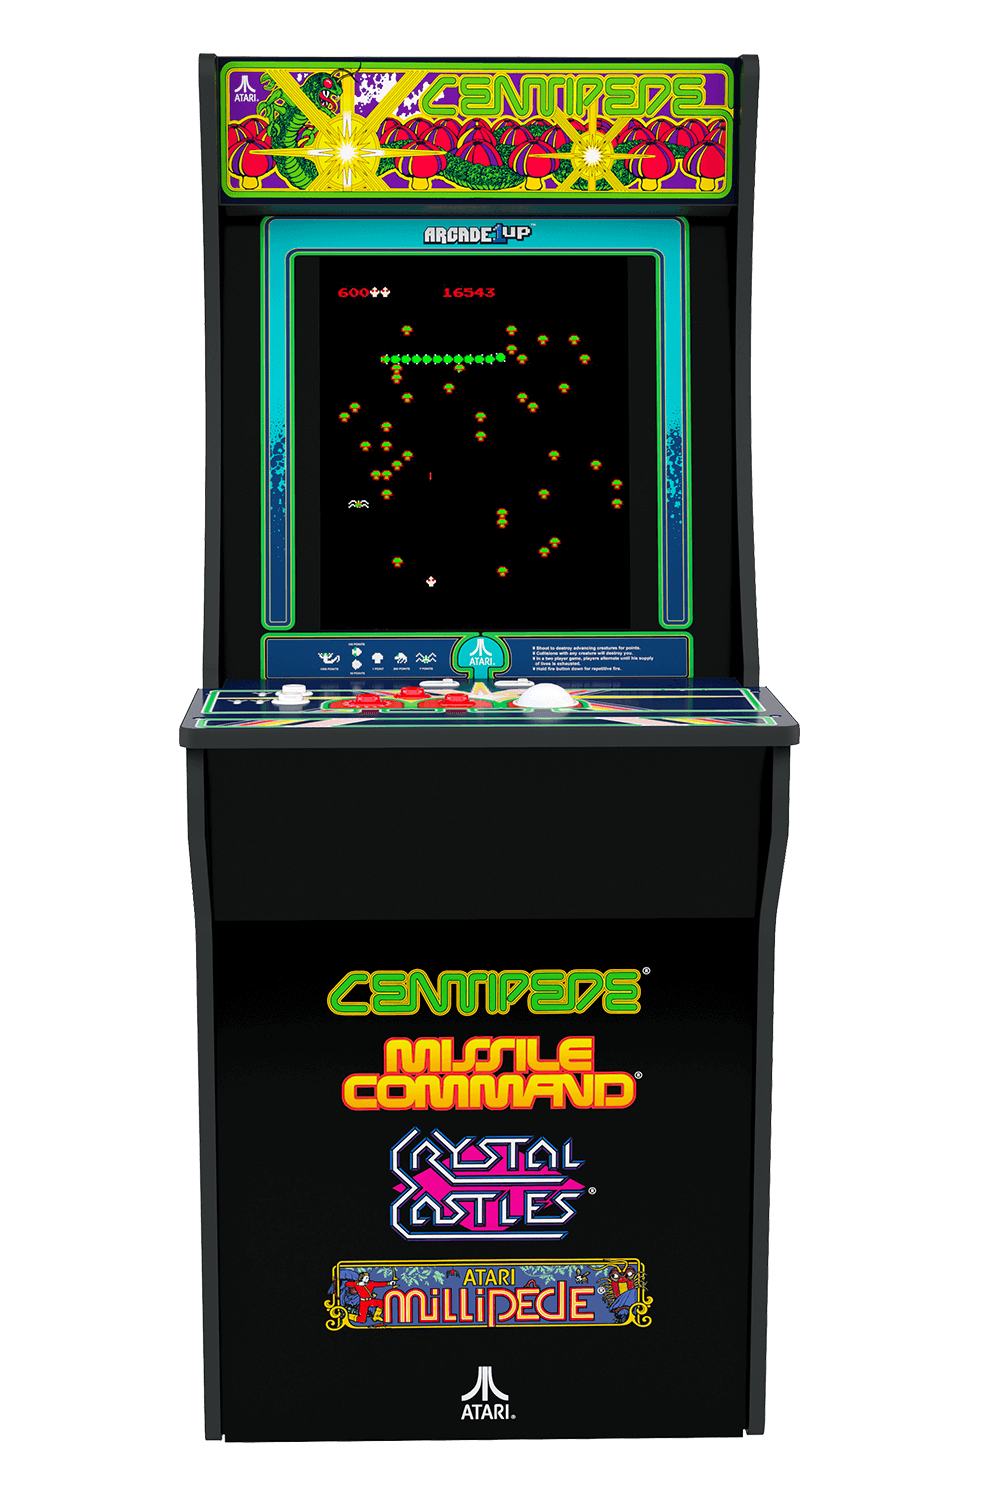 Arcade1up Officially Licensed Arcade Cabinets